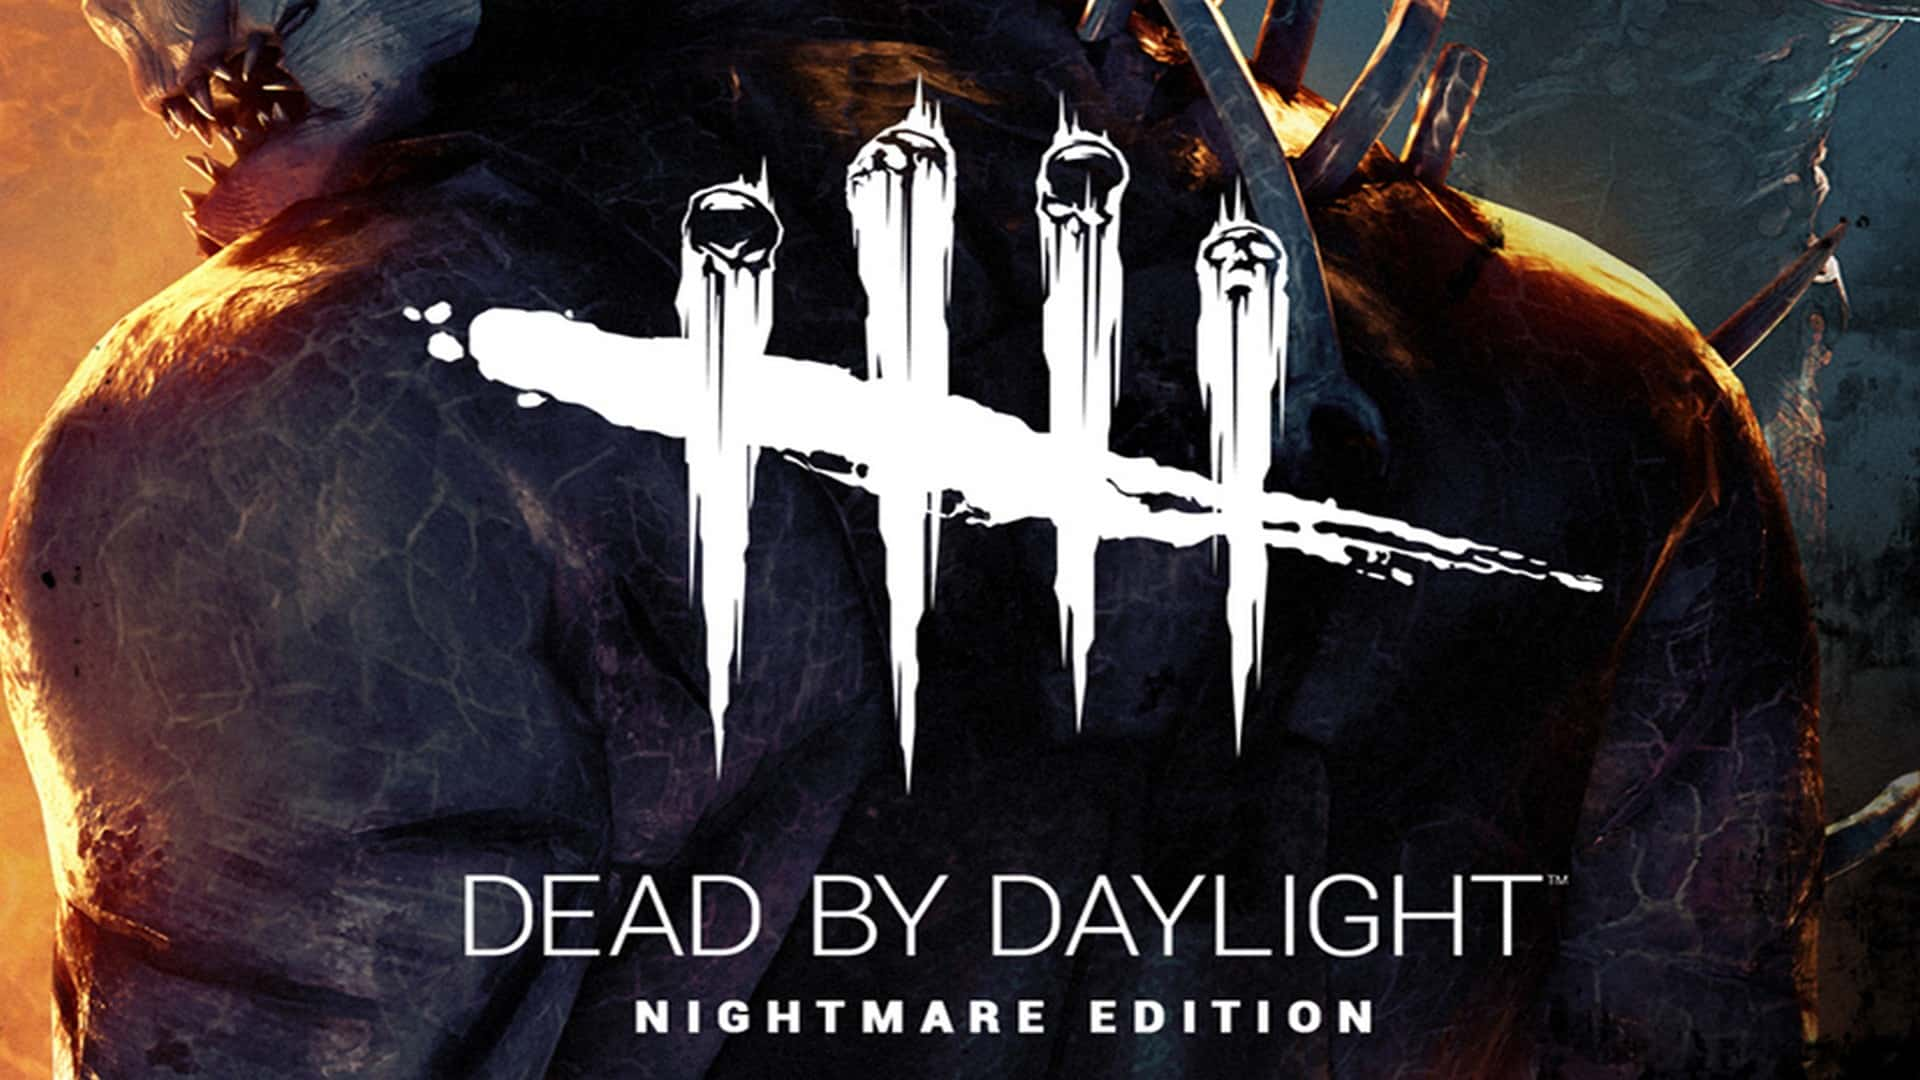 Dead By Daylight Nightmare Edition Offers Bigger Screams And Killer Savings For Players On PS4 & Xbox One